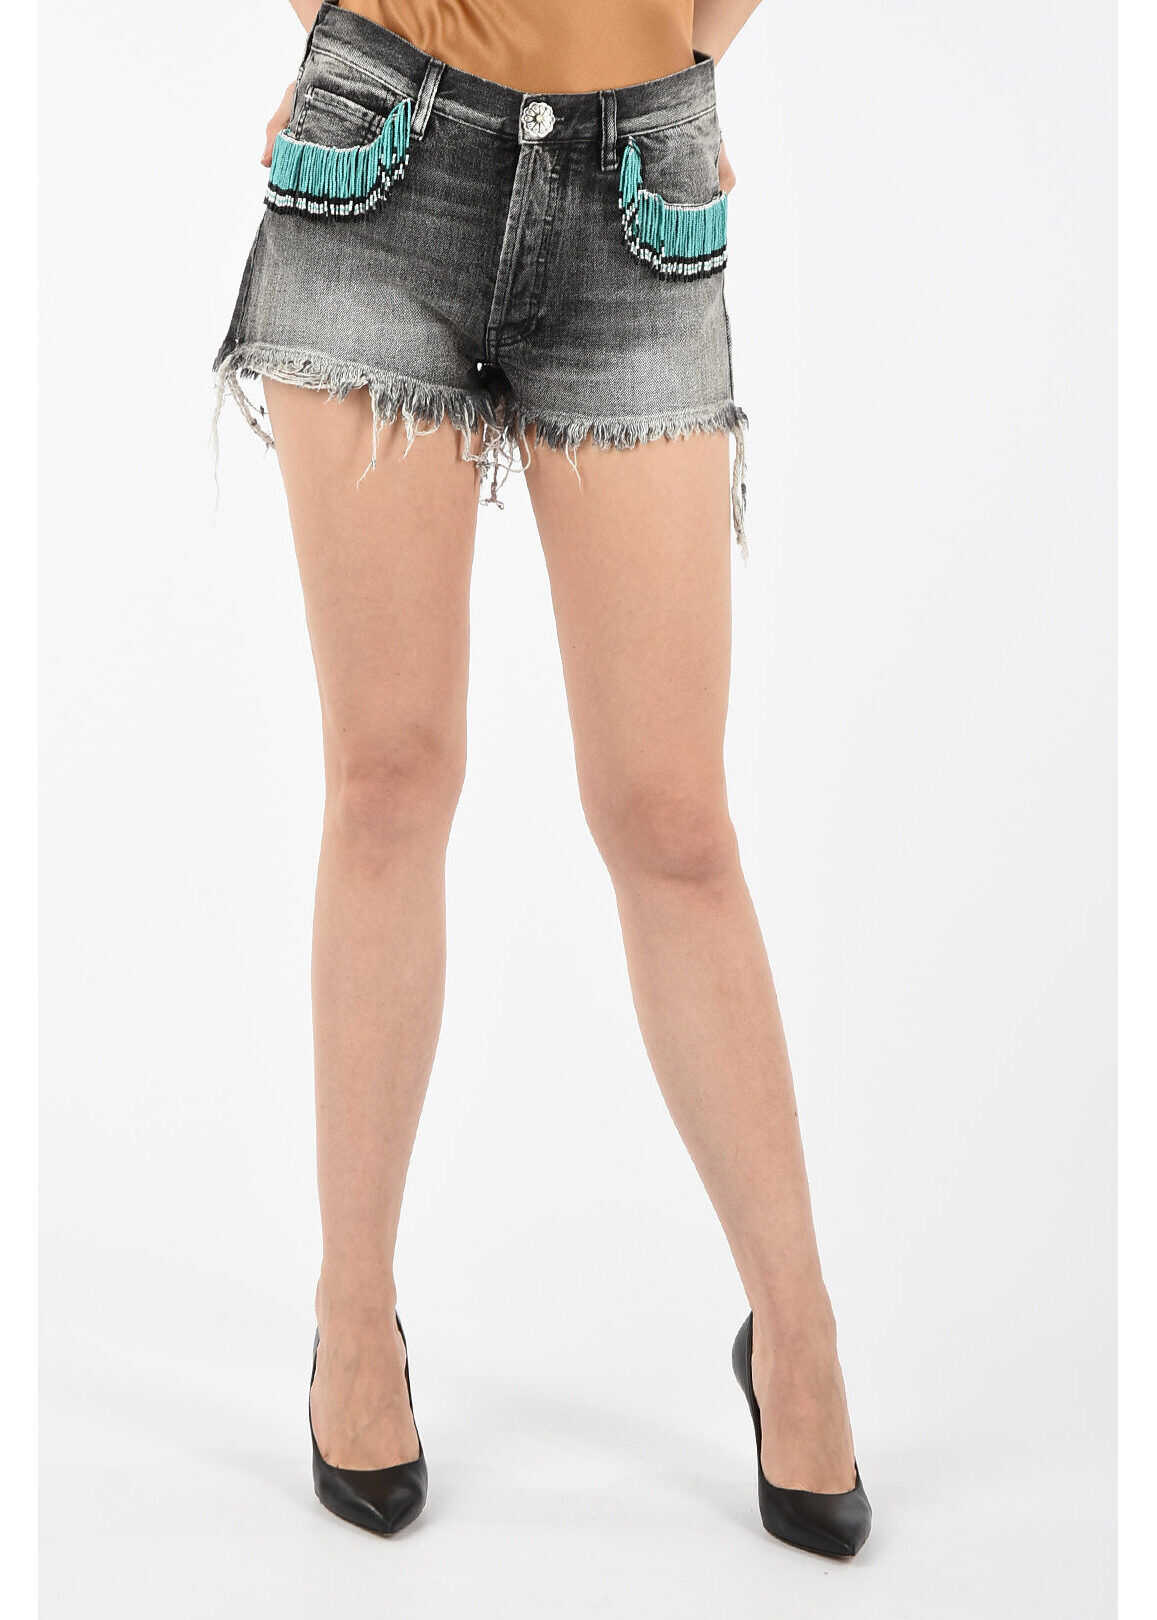 ALANUI Denim Shorts with Beaded Embroideries GRAY